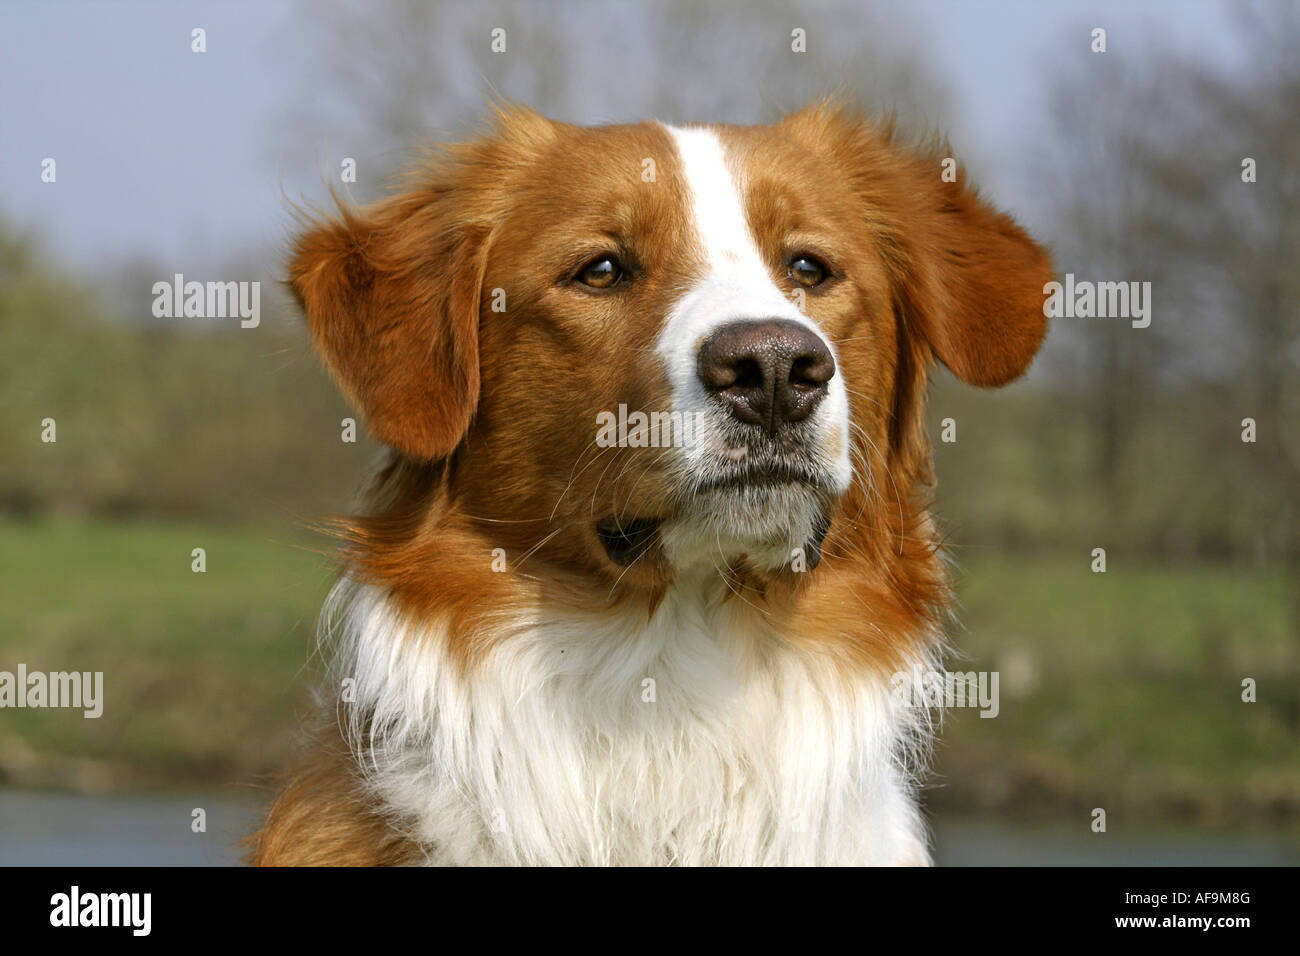 Mixed Breed Dog Canis Lupus F Familiaris Leonberger Golden Stock